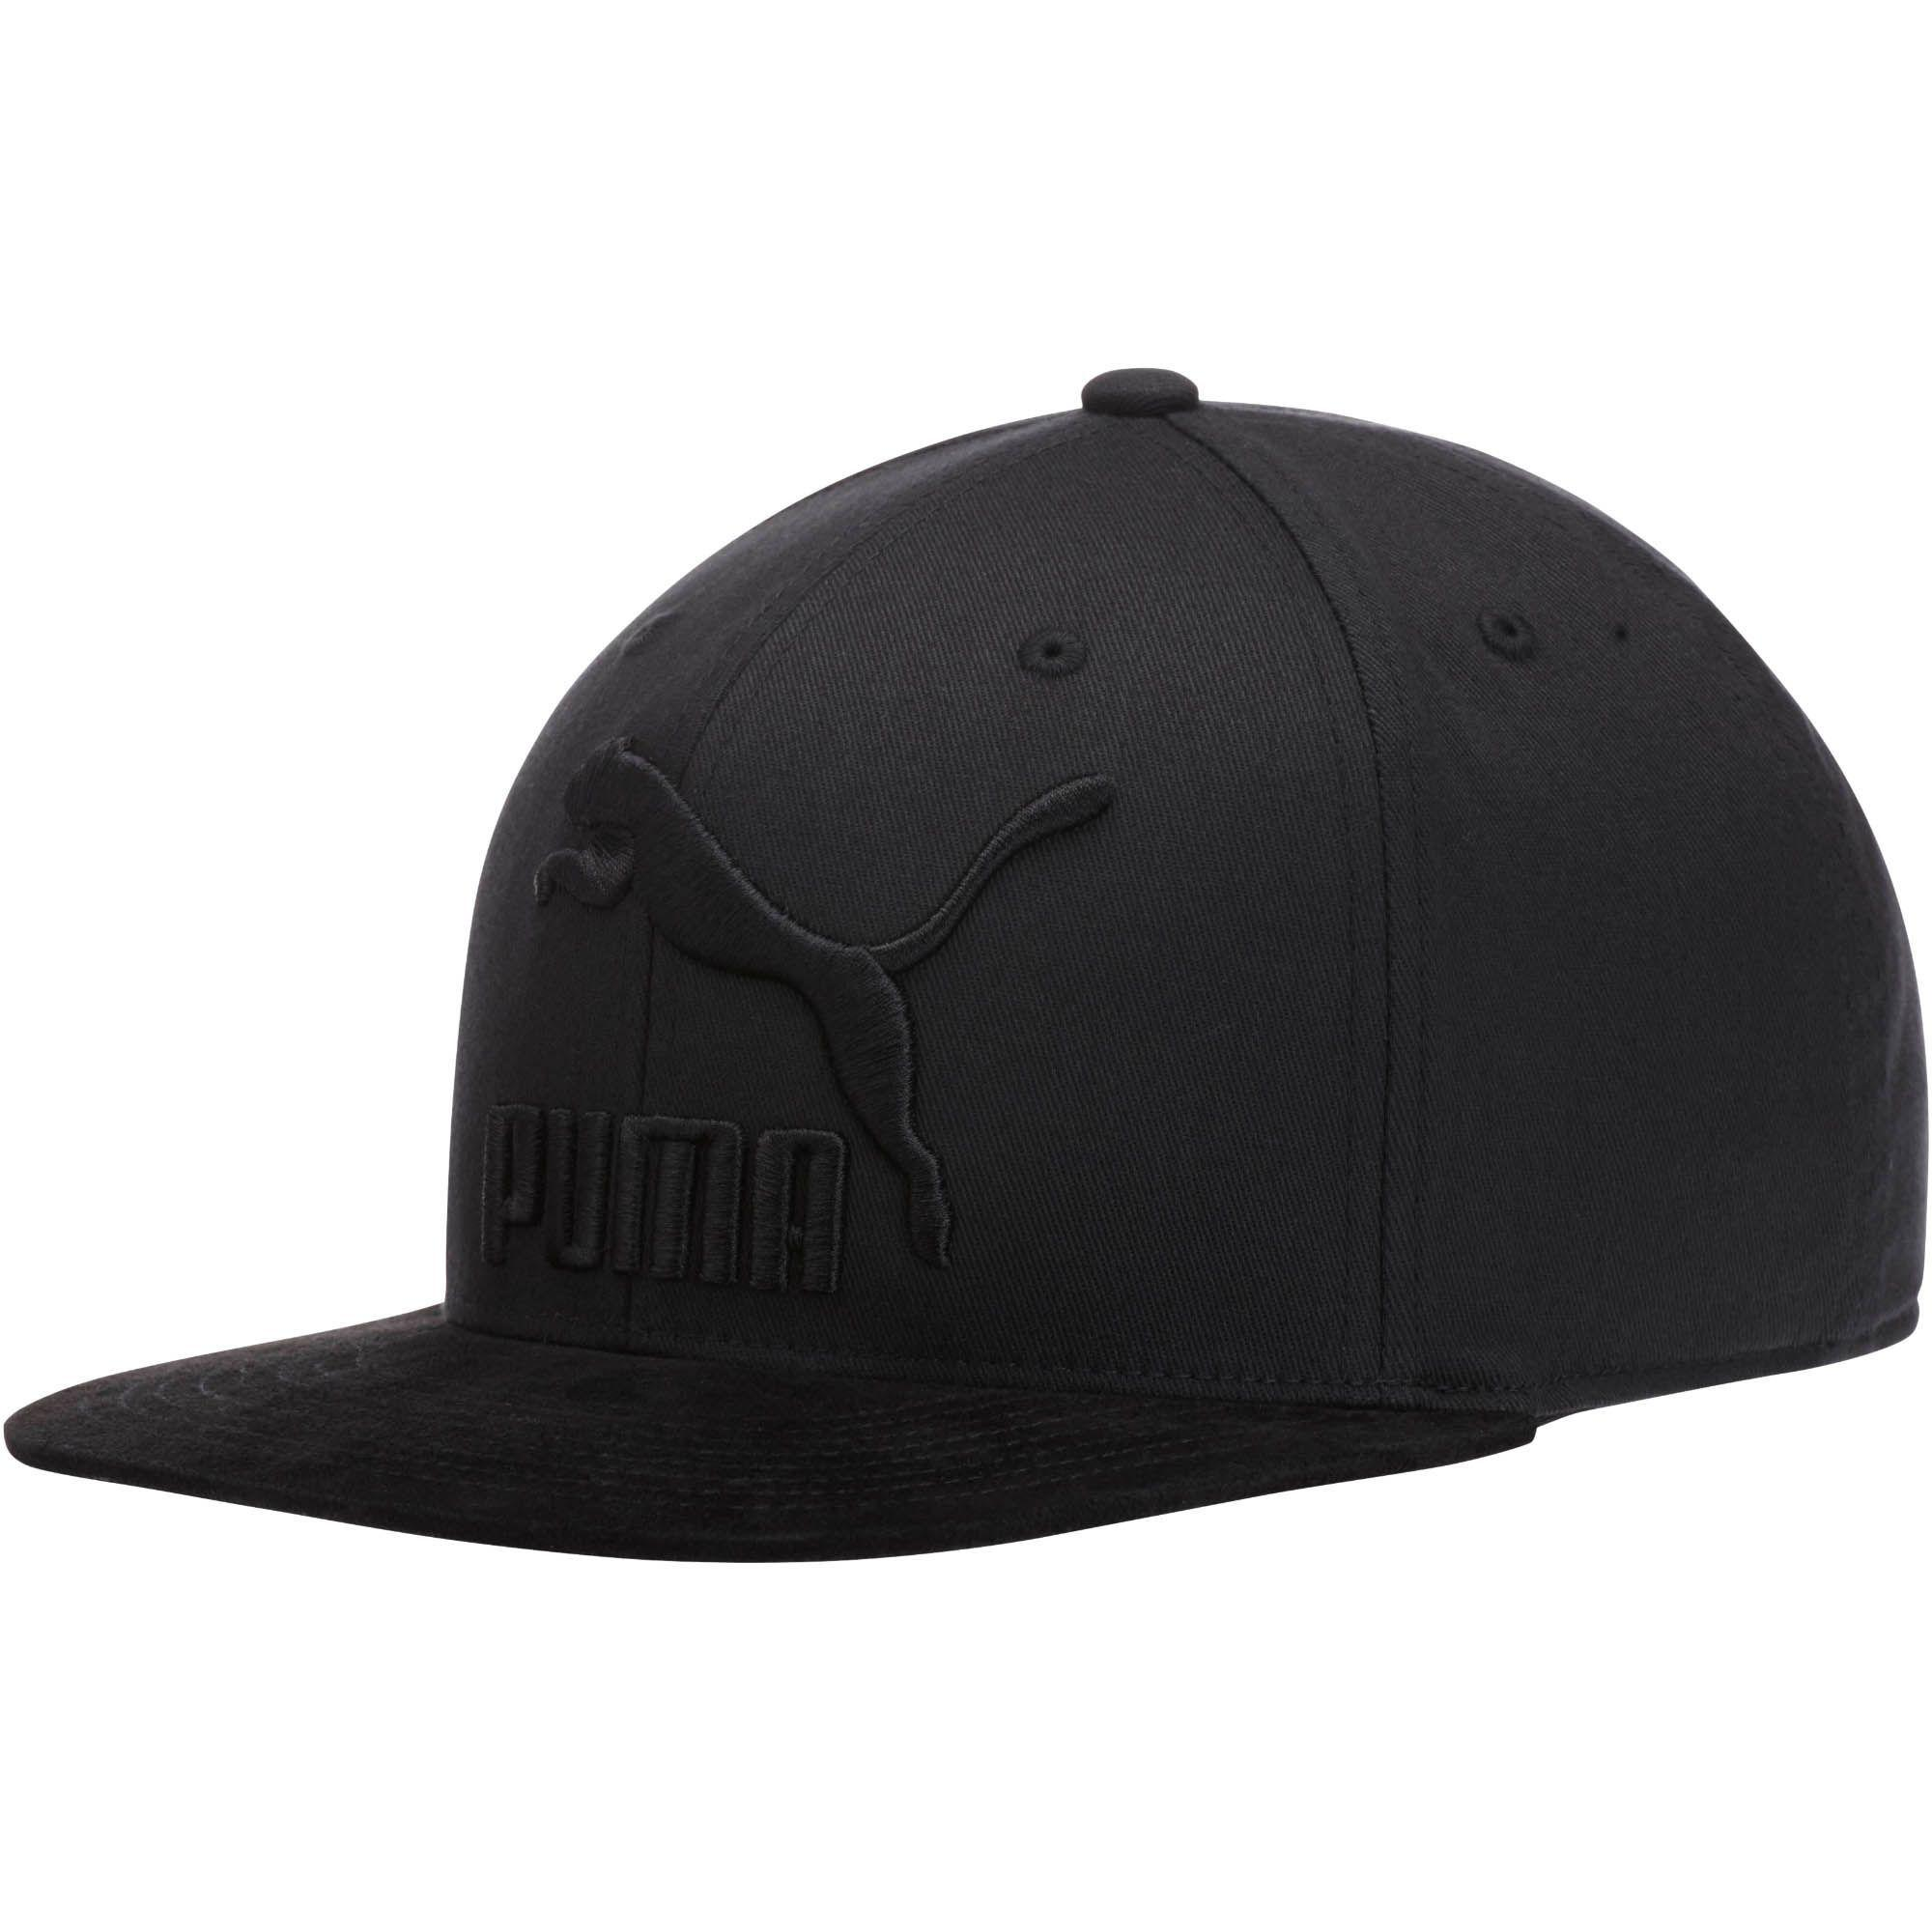 6e91fc01ffc0 Lyst - PUMA Suede 110 Snapback Hat in Black for Men